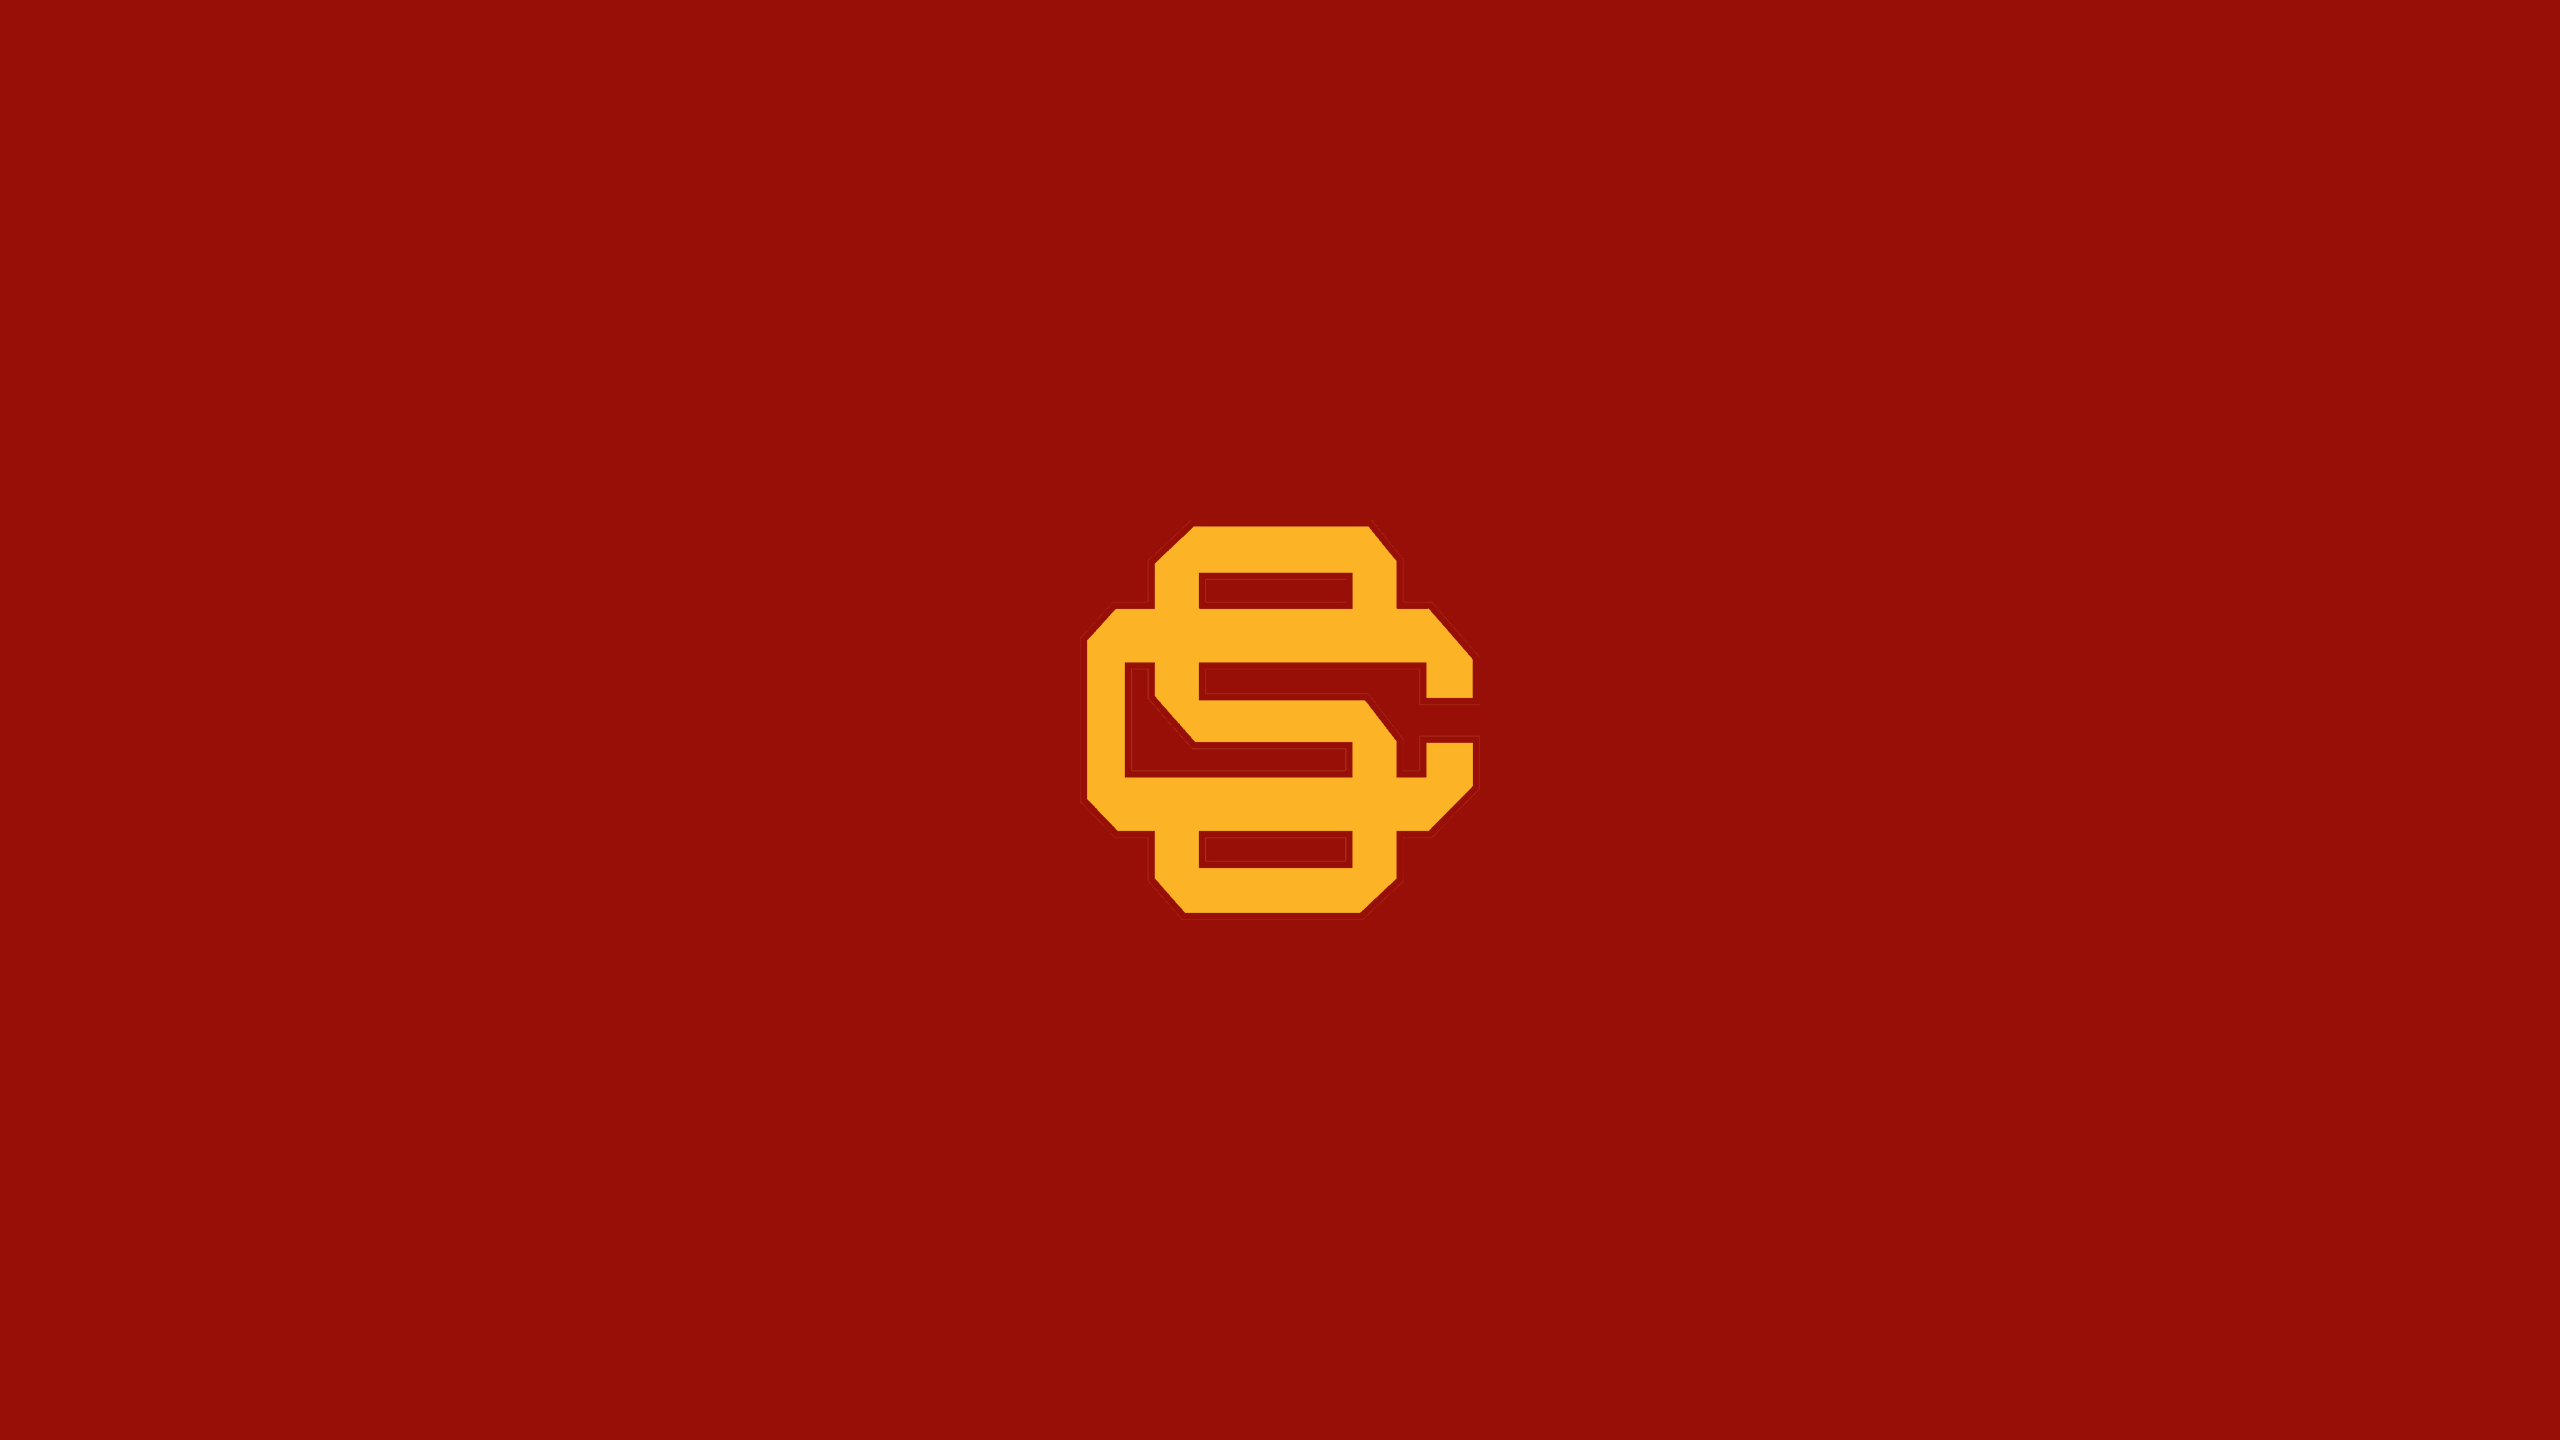 University of Southern California Trojans (Baseball)